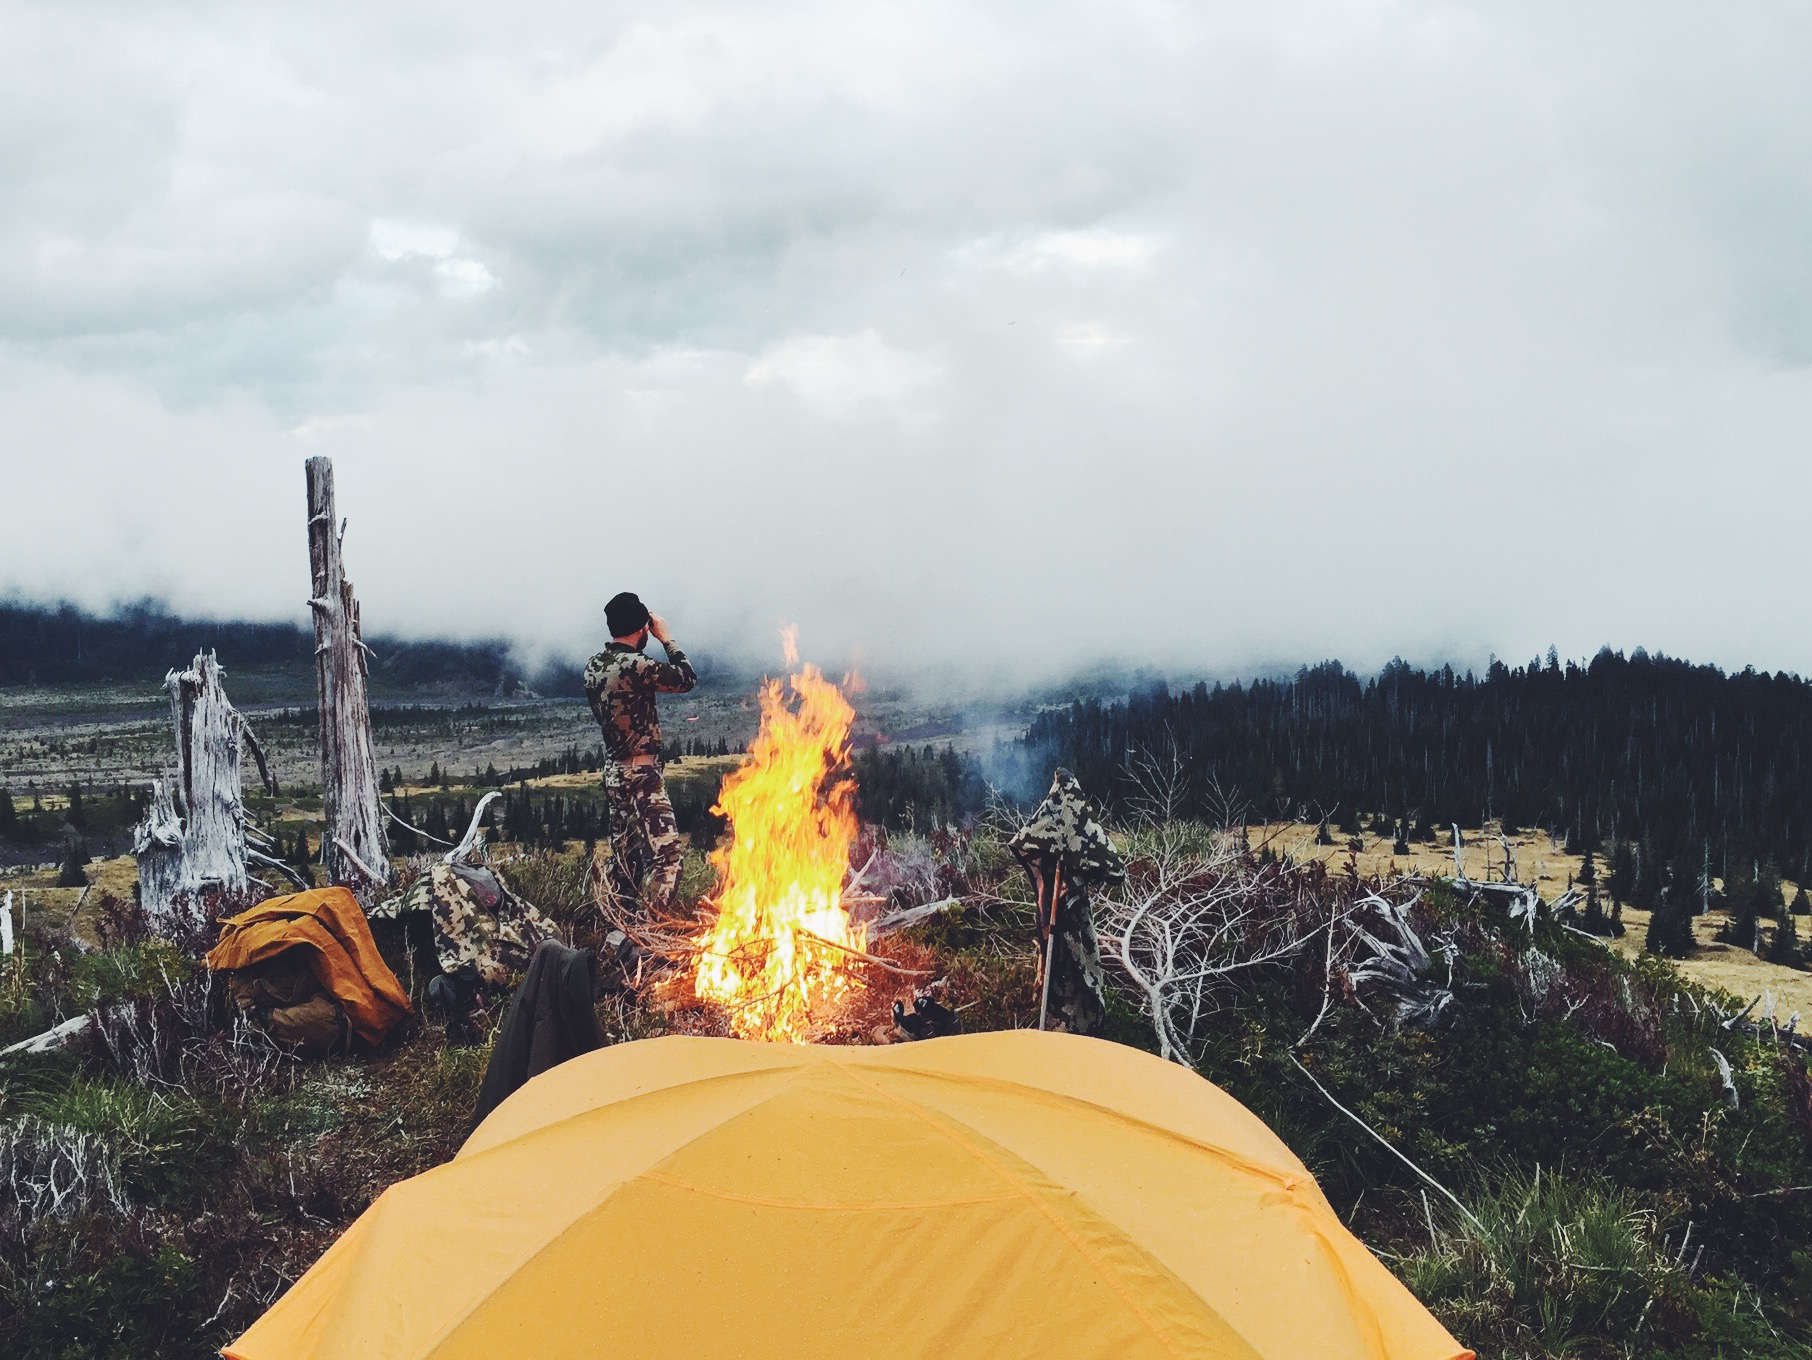 This shot was taken after the hike in when we were drying out our gear via bon fire.  Photo by Dustin Evans